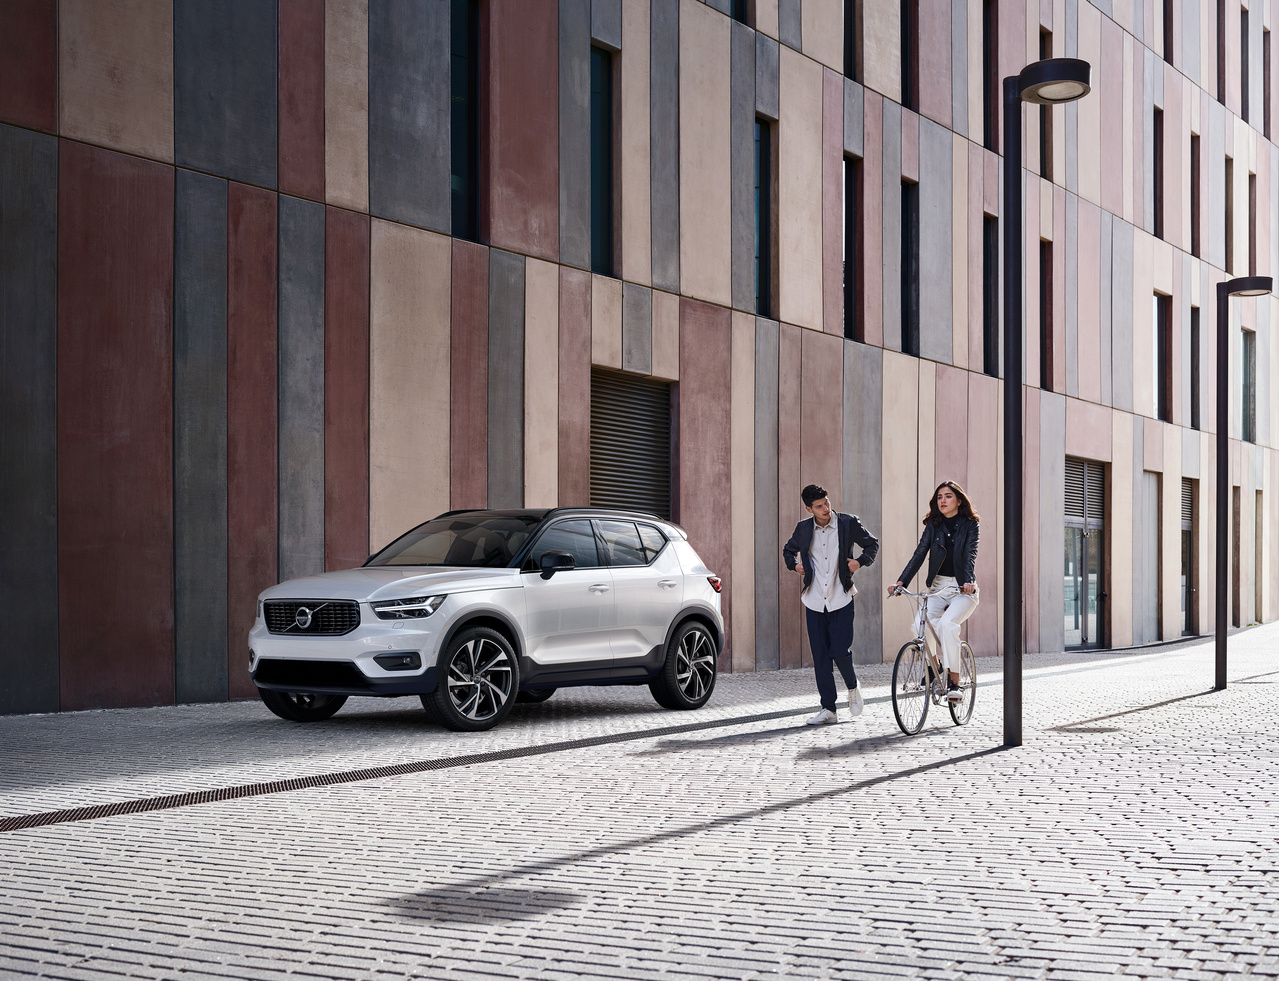 Volvo XC40 at Kempthorn Volvo Cars